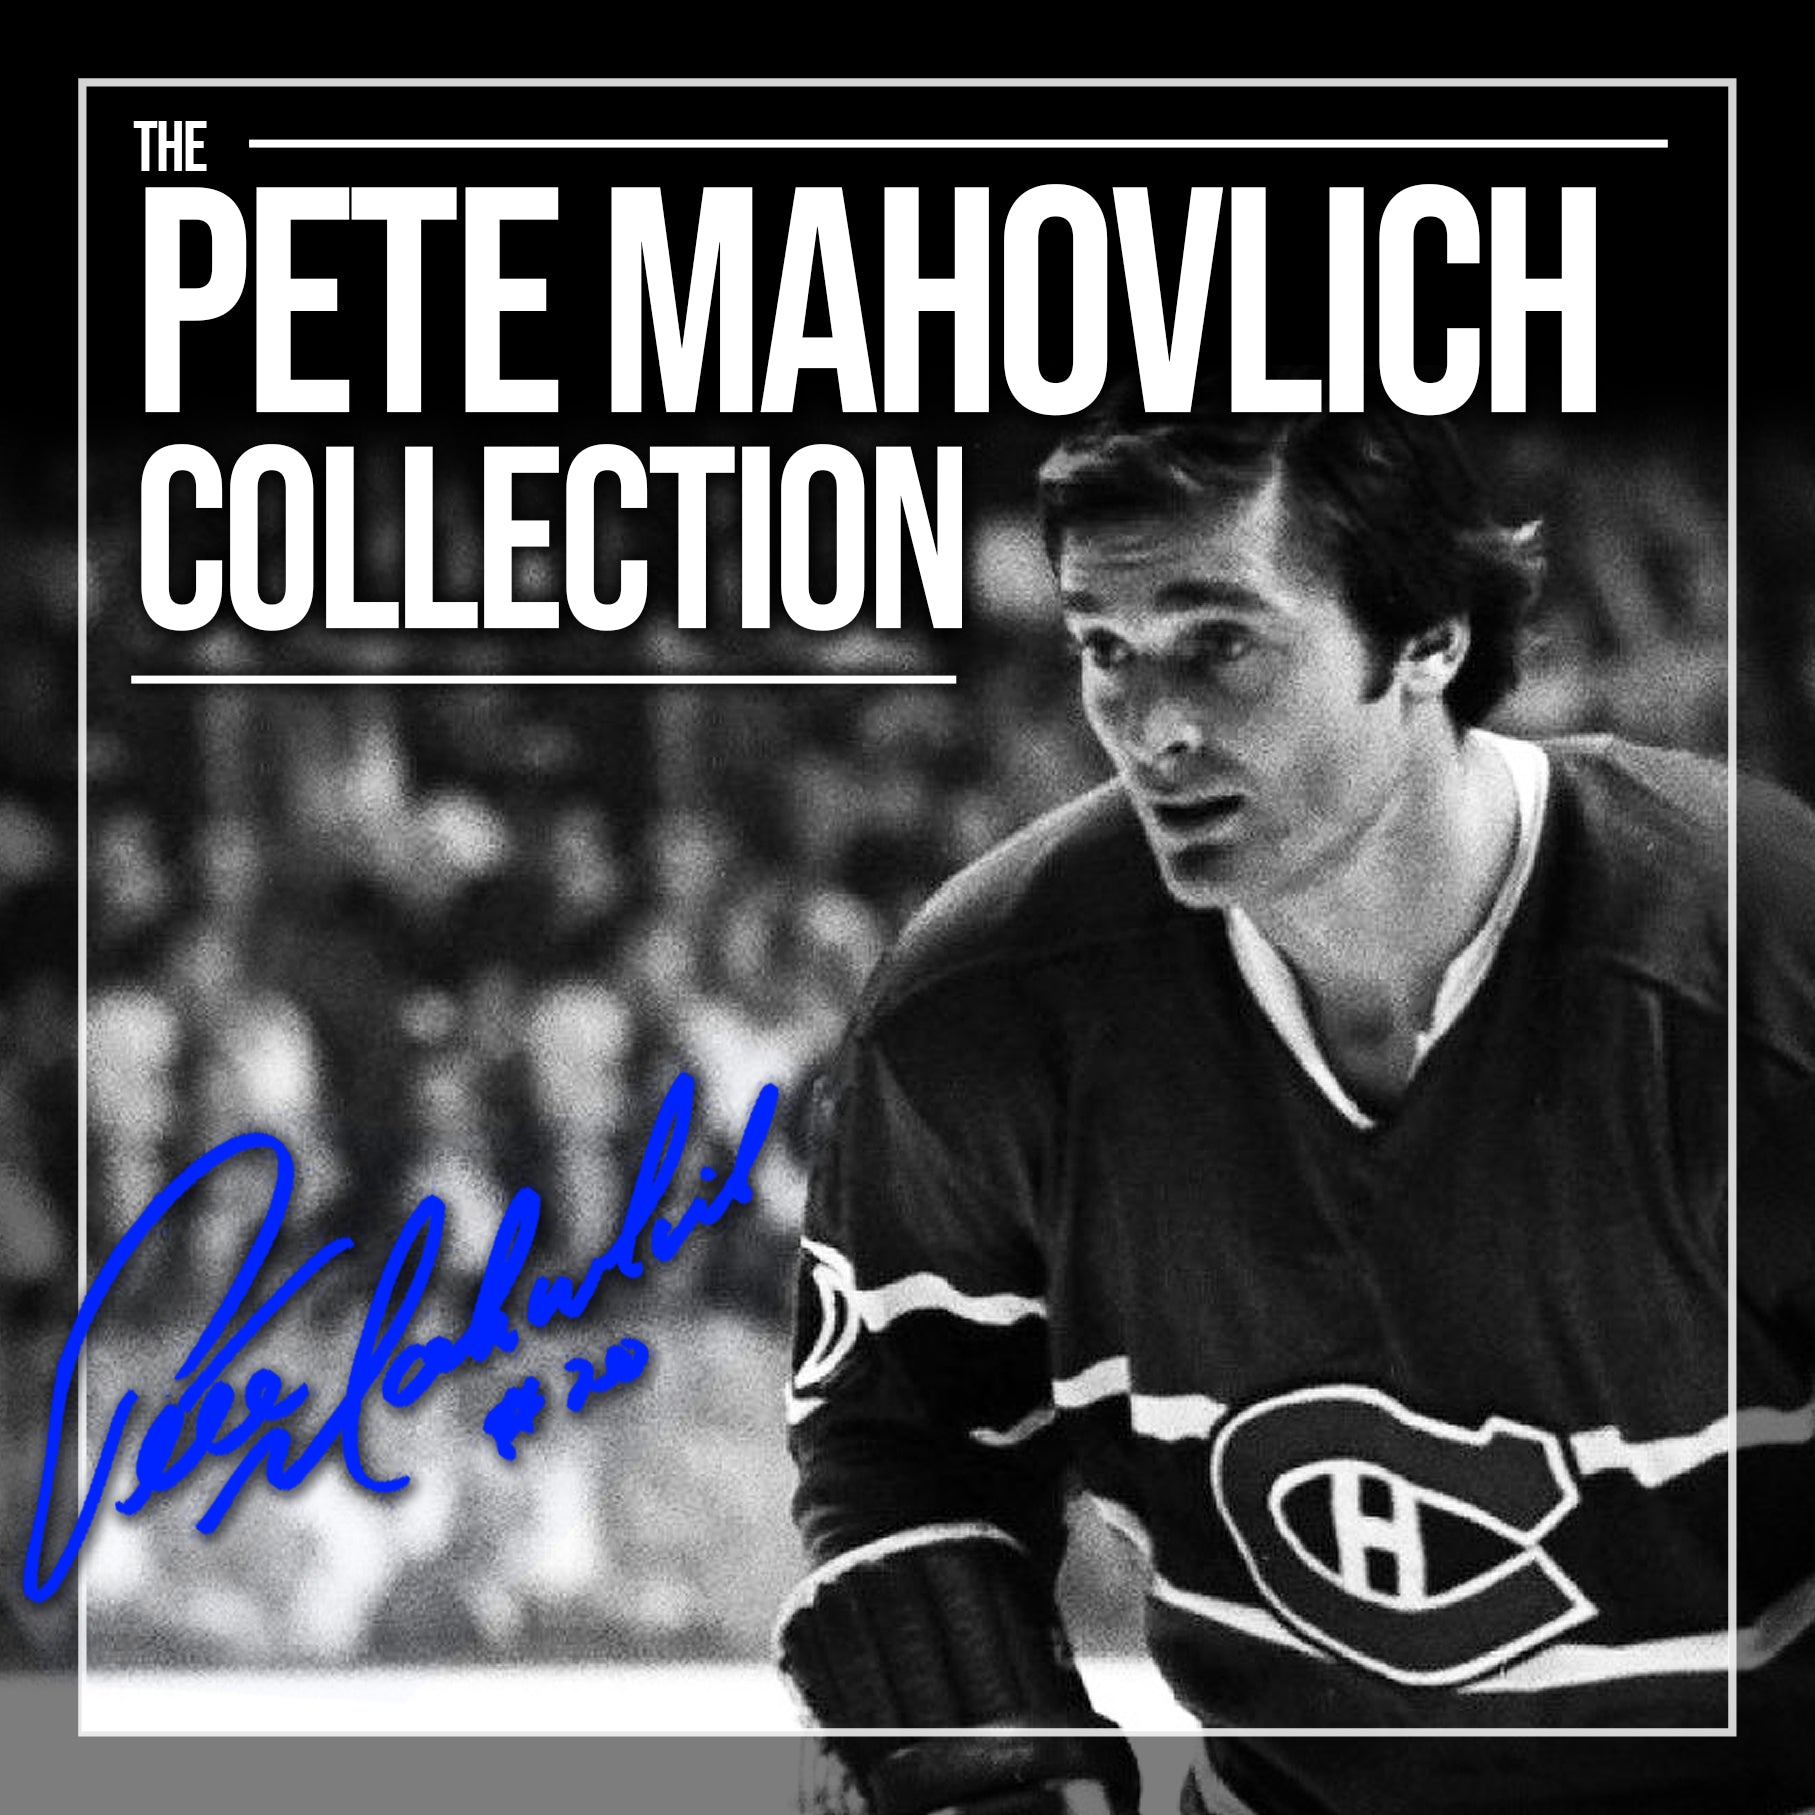 Peter Mahovlich Exclusive Collection